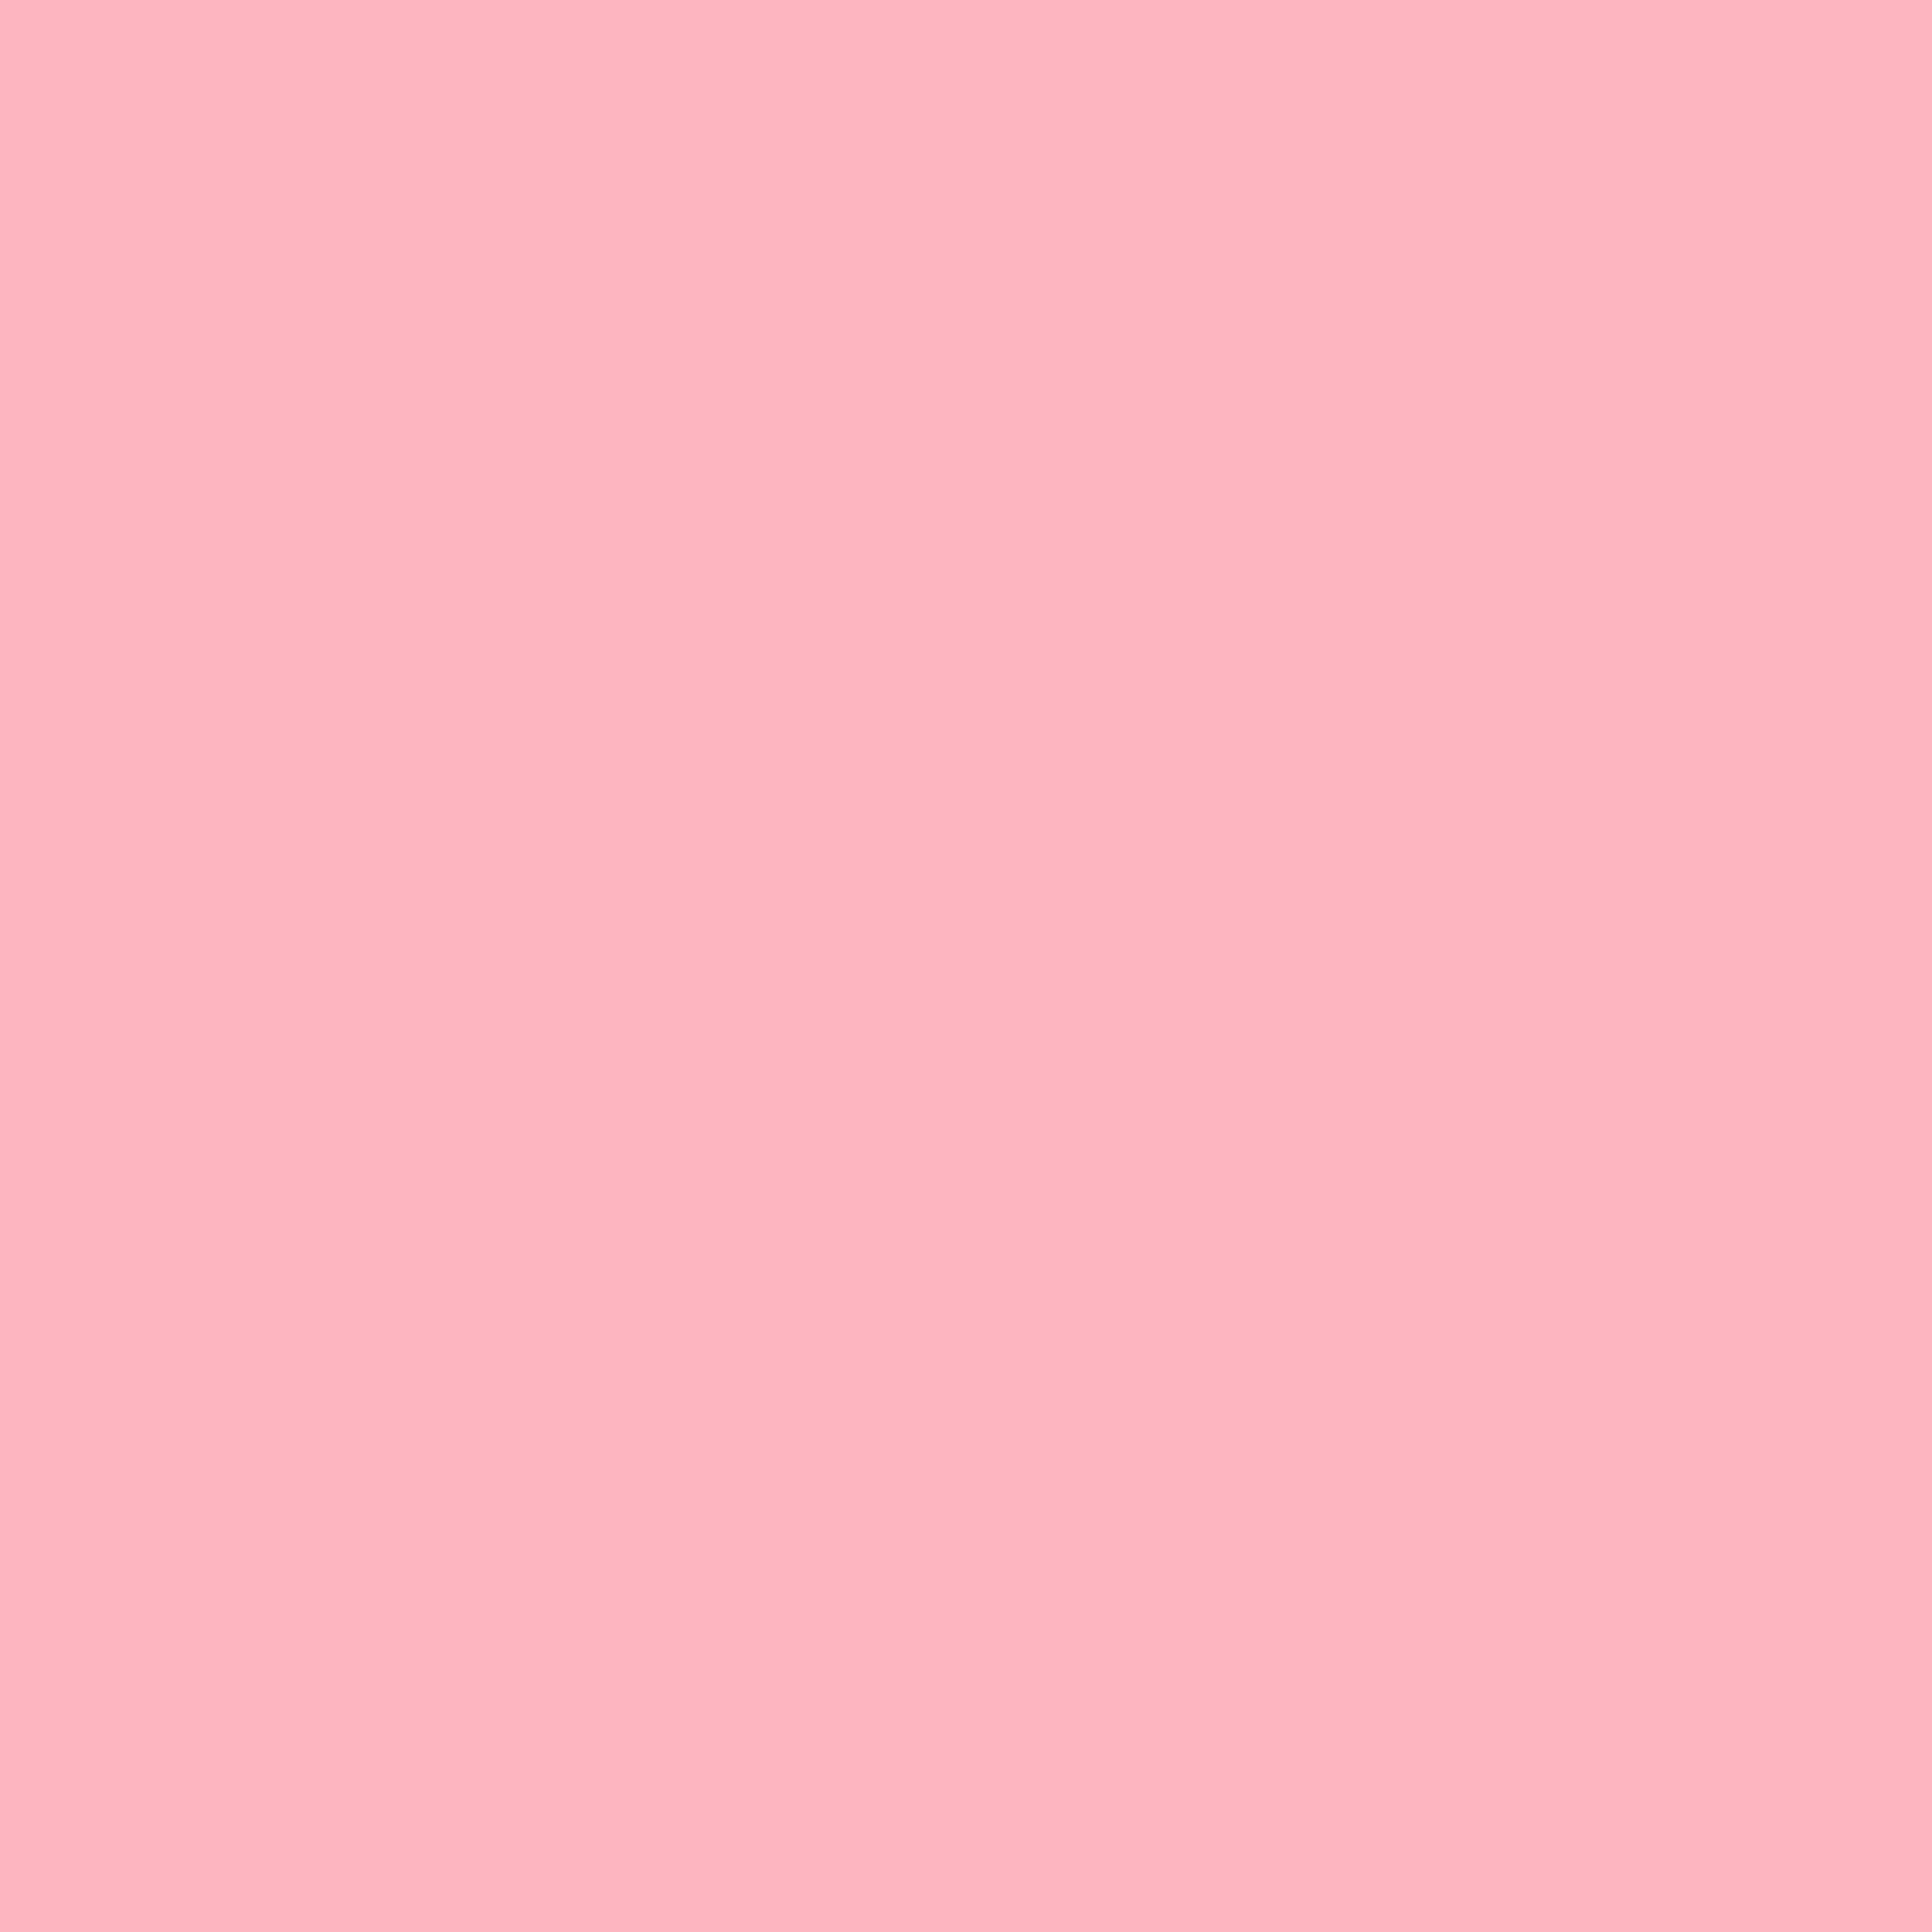 Solid Light Pink Background 2048x2048 light pink solid 2048x2048